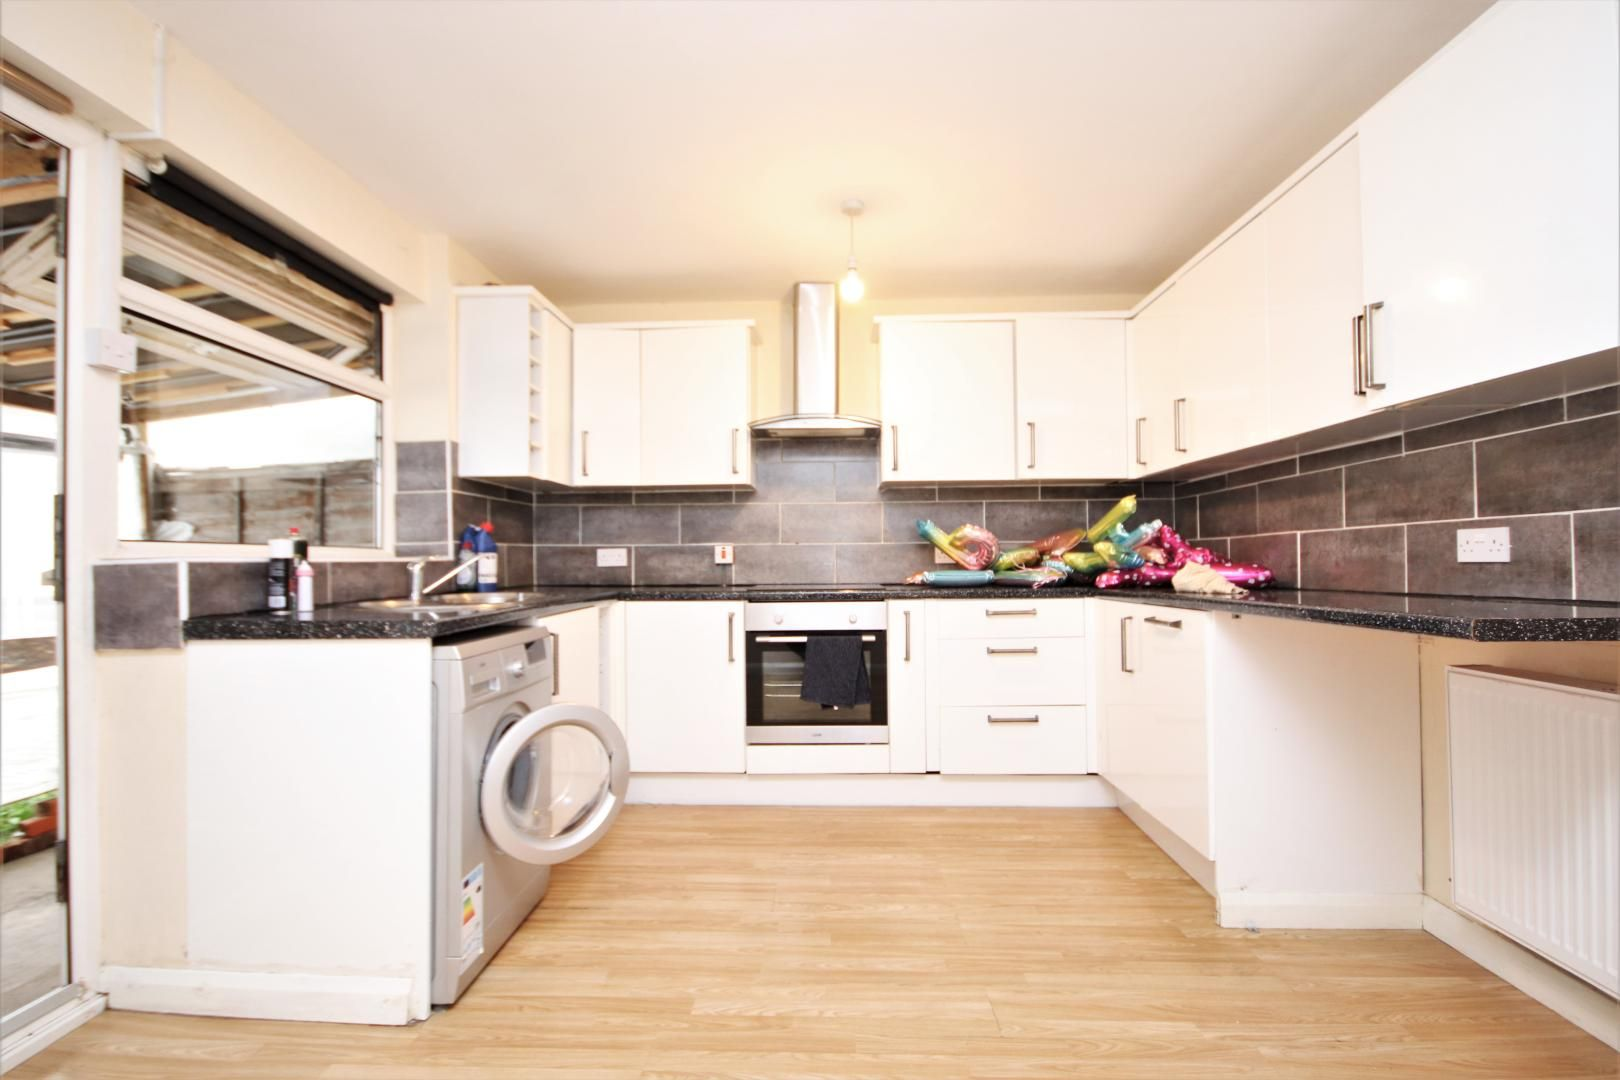 5 bed house to rent in Croombs Road, E16